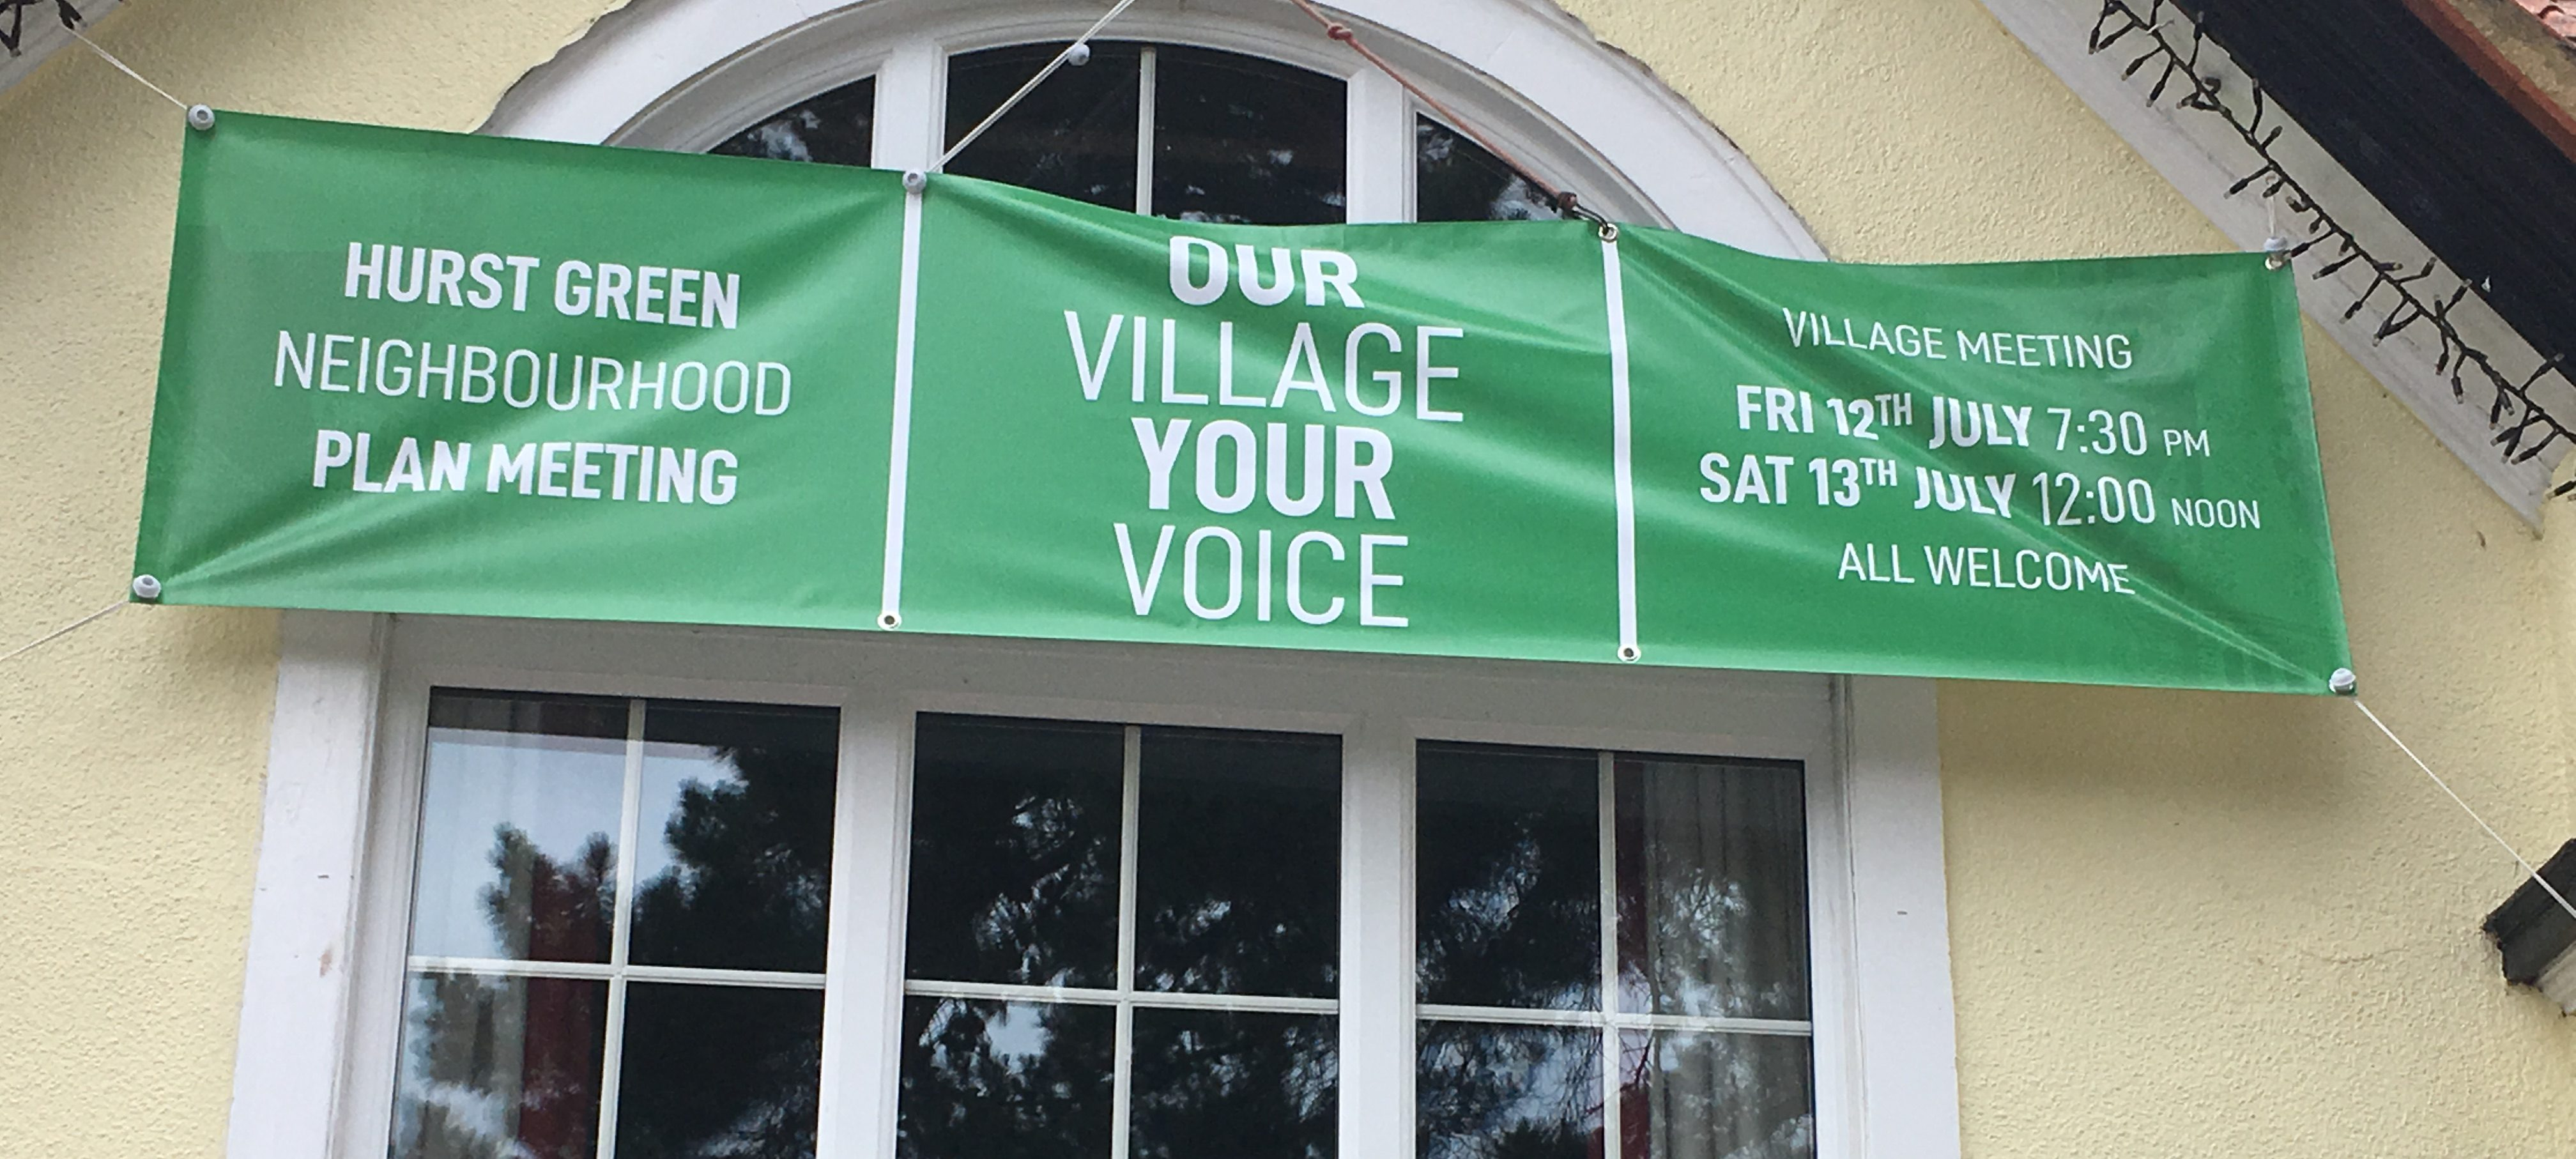 image of banner on the village hall promoting the neighbourhood plan